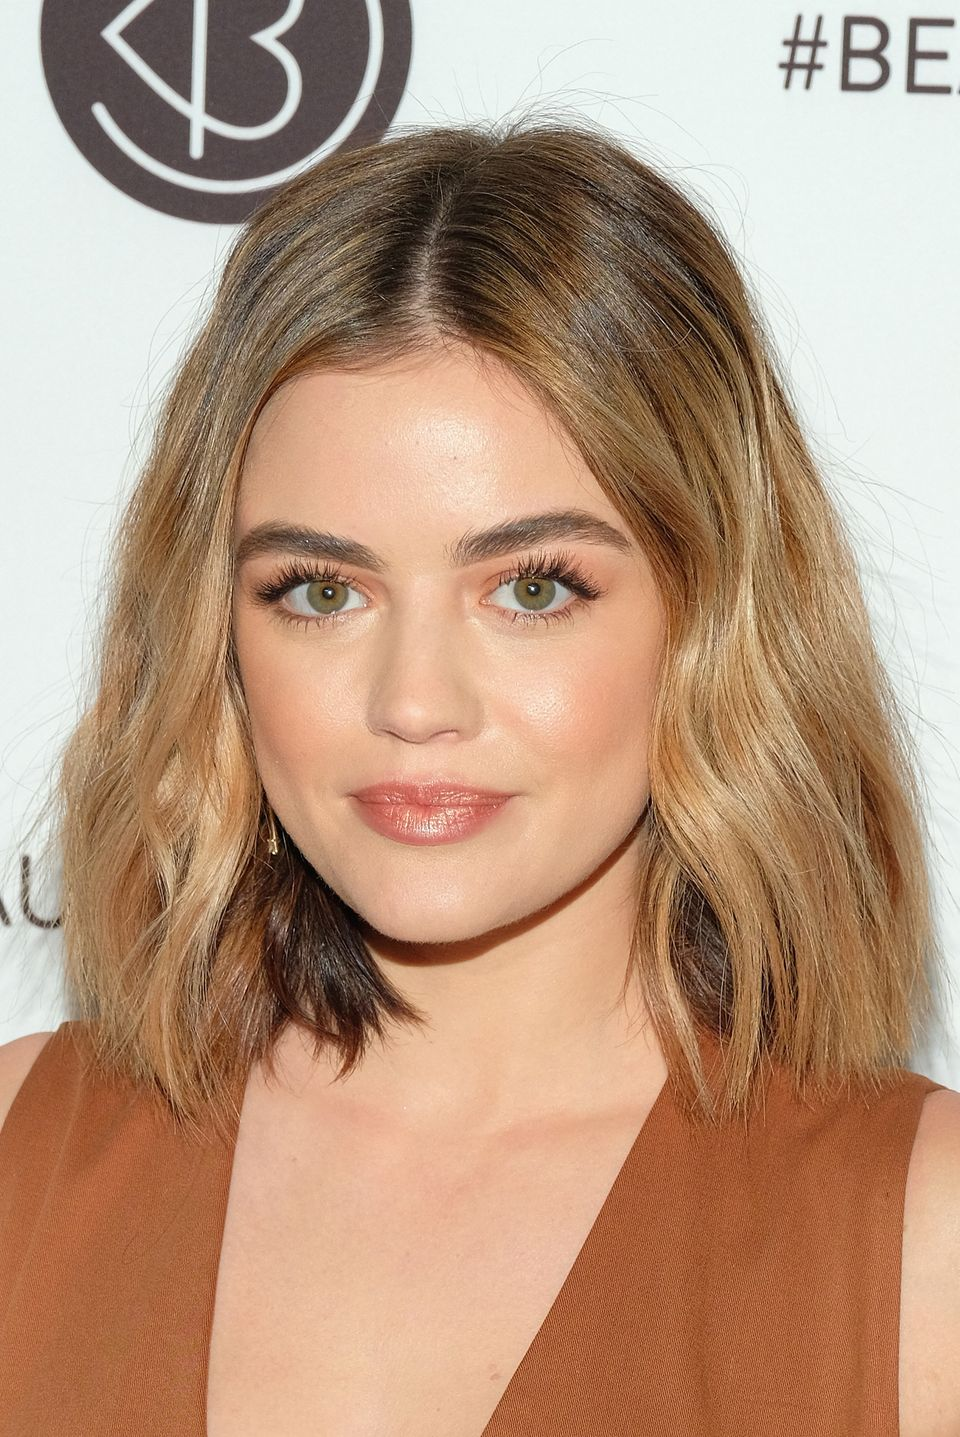 The 50 Best Celebrity Hairstyles To Try Right Now